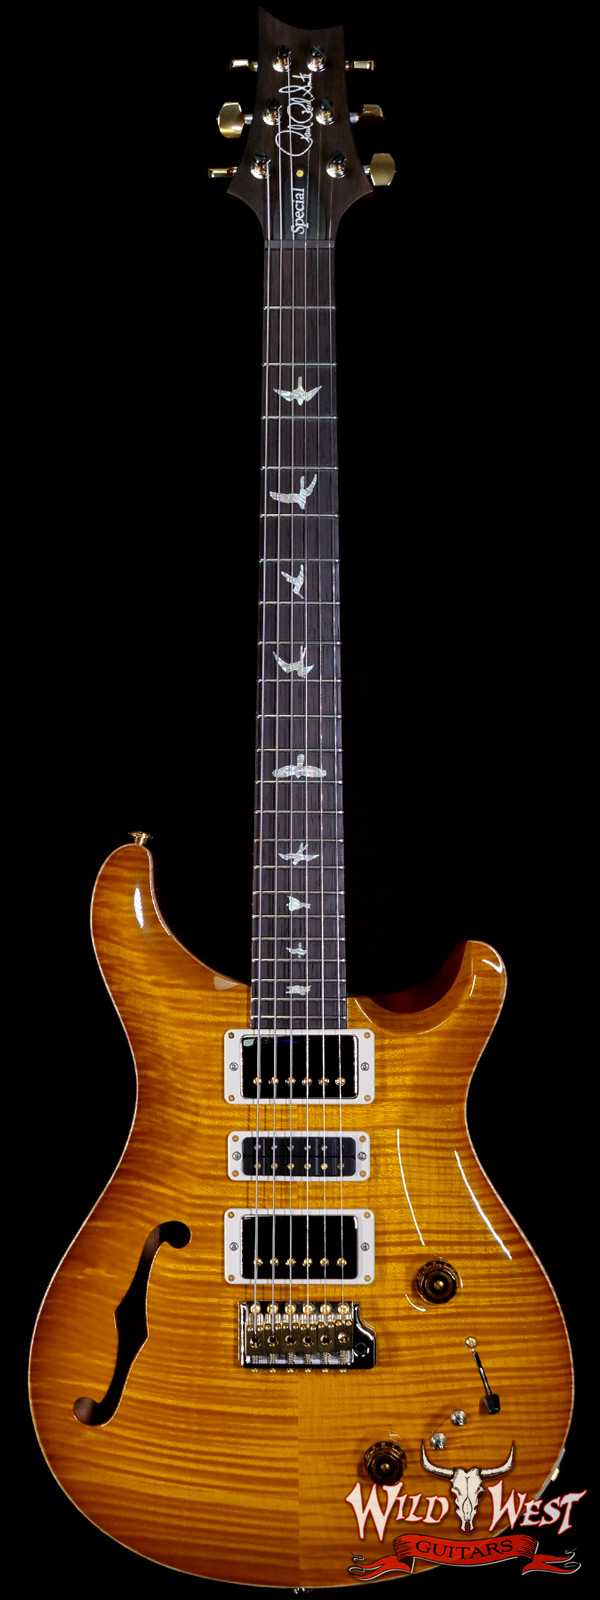 PRS Wood Library 10 Top Special 22 Semi-Hollow Flame Mahogany Neck Brazilian Rosewood Fingerboard McCarty Sunburst